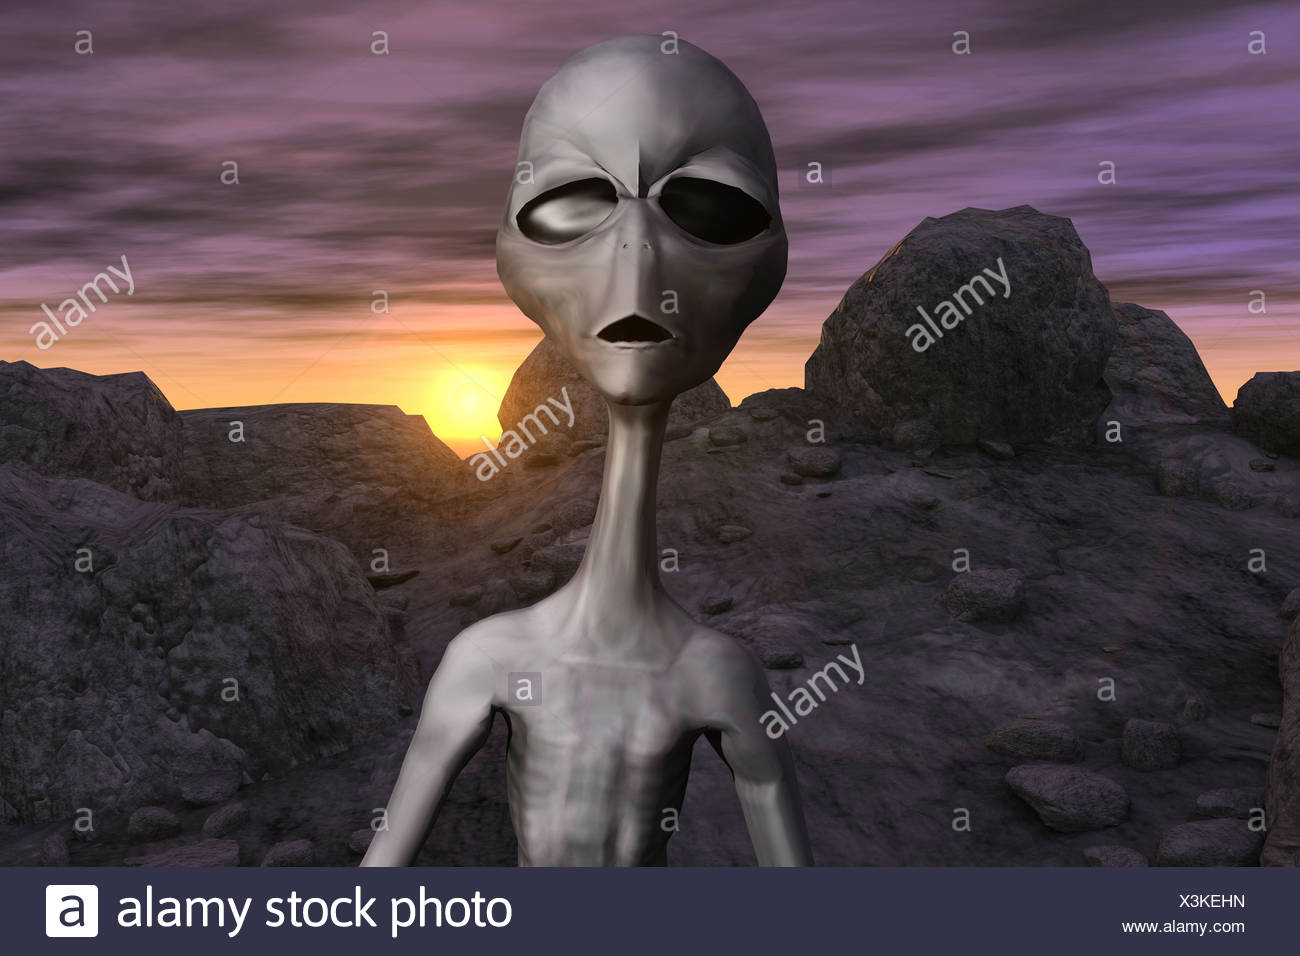 Computer Generated Image Of An Alien - Stock Image